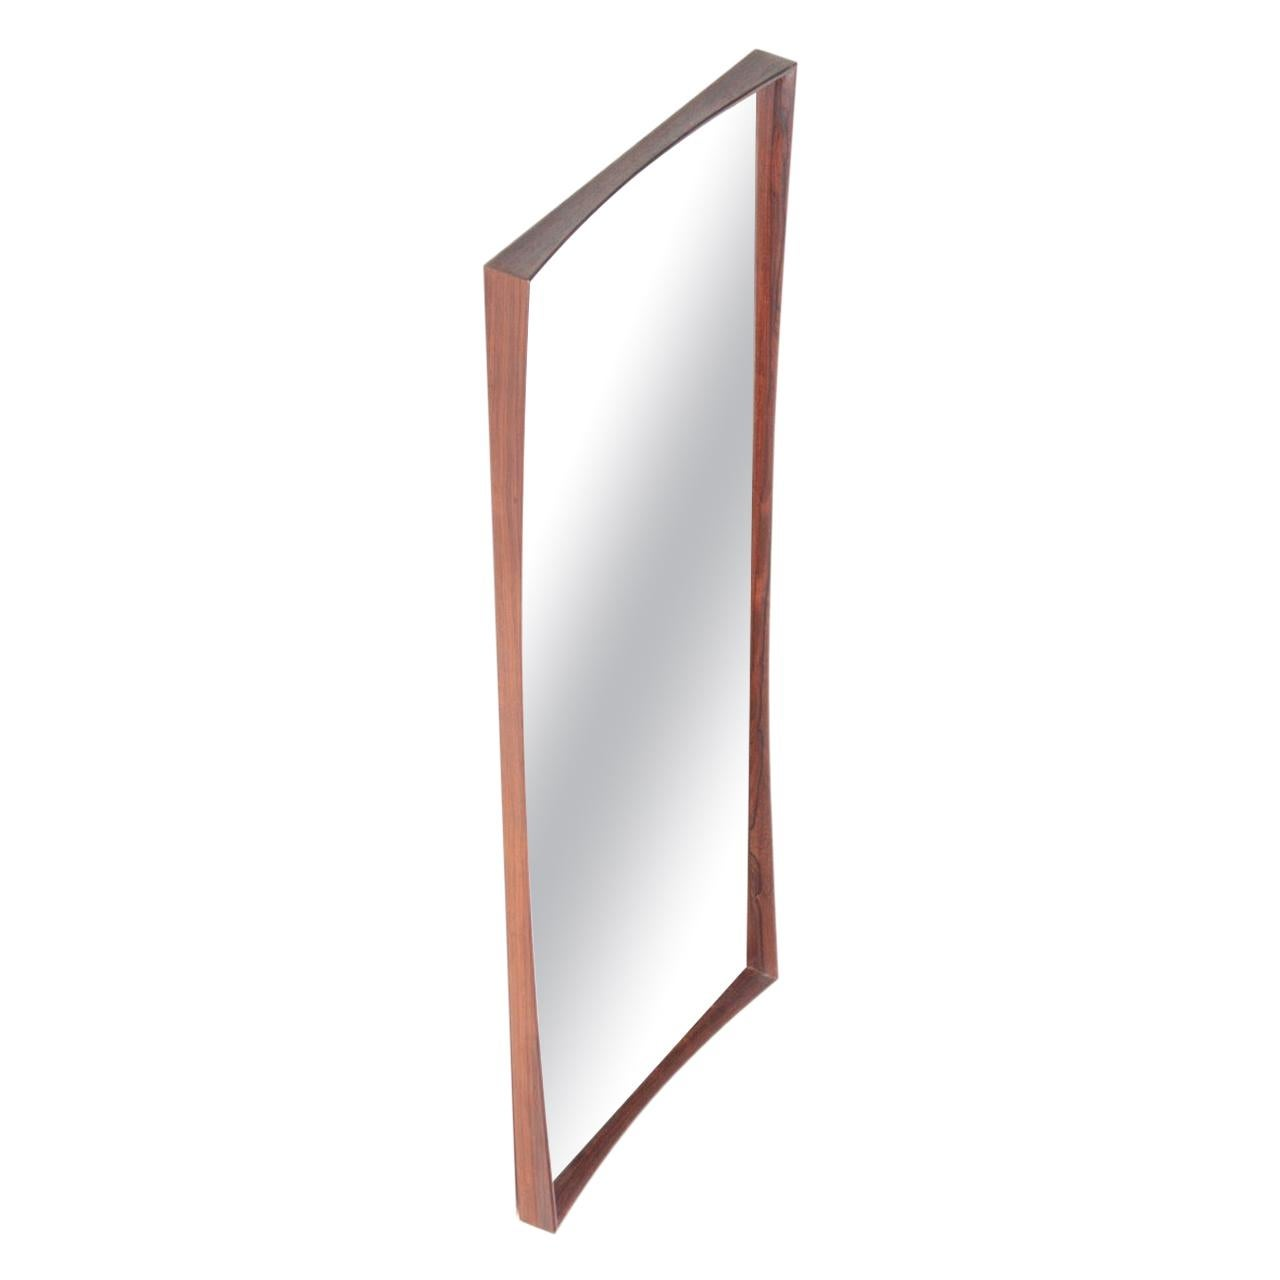 Midcentury Wall Mirror in Rosewood, Danish Modern, 1960s